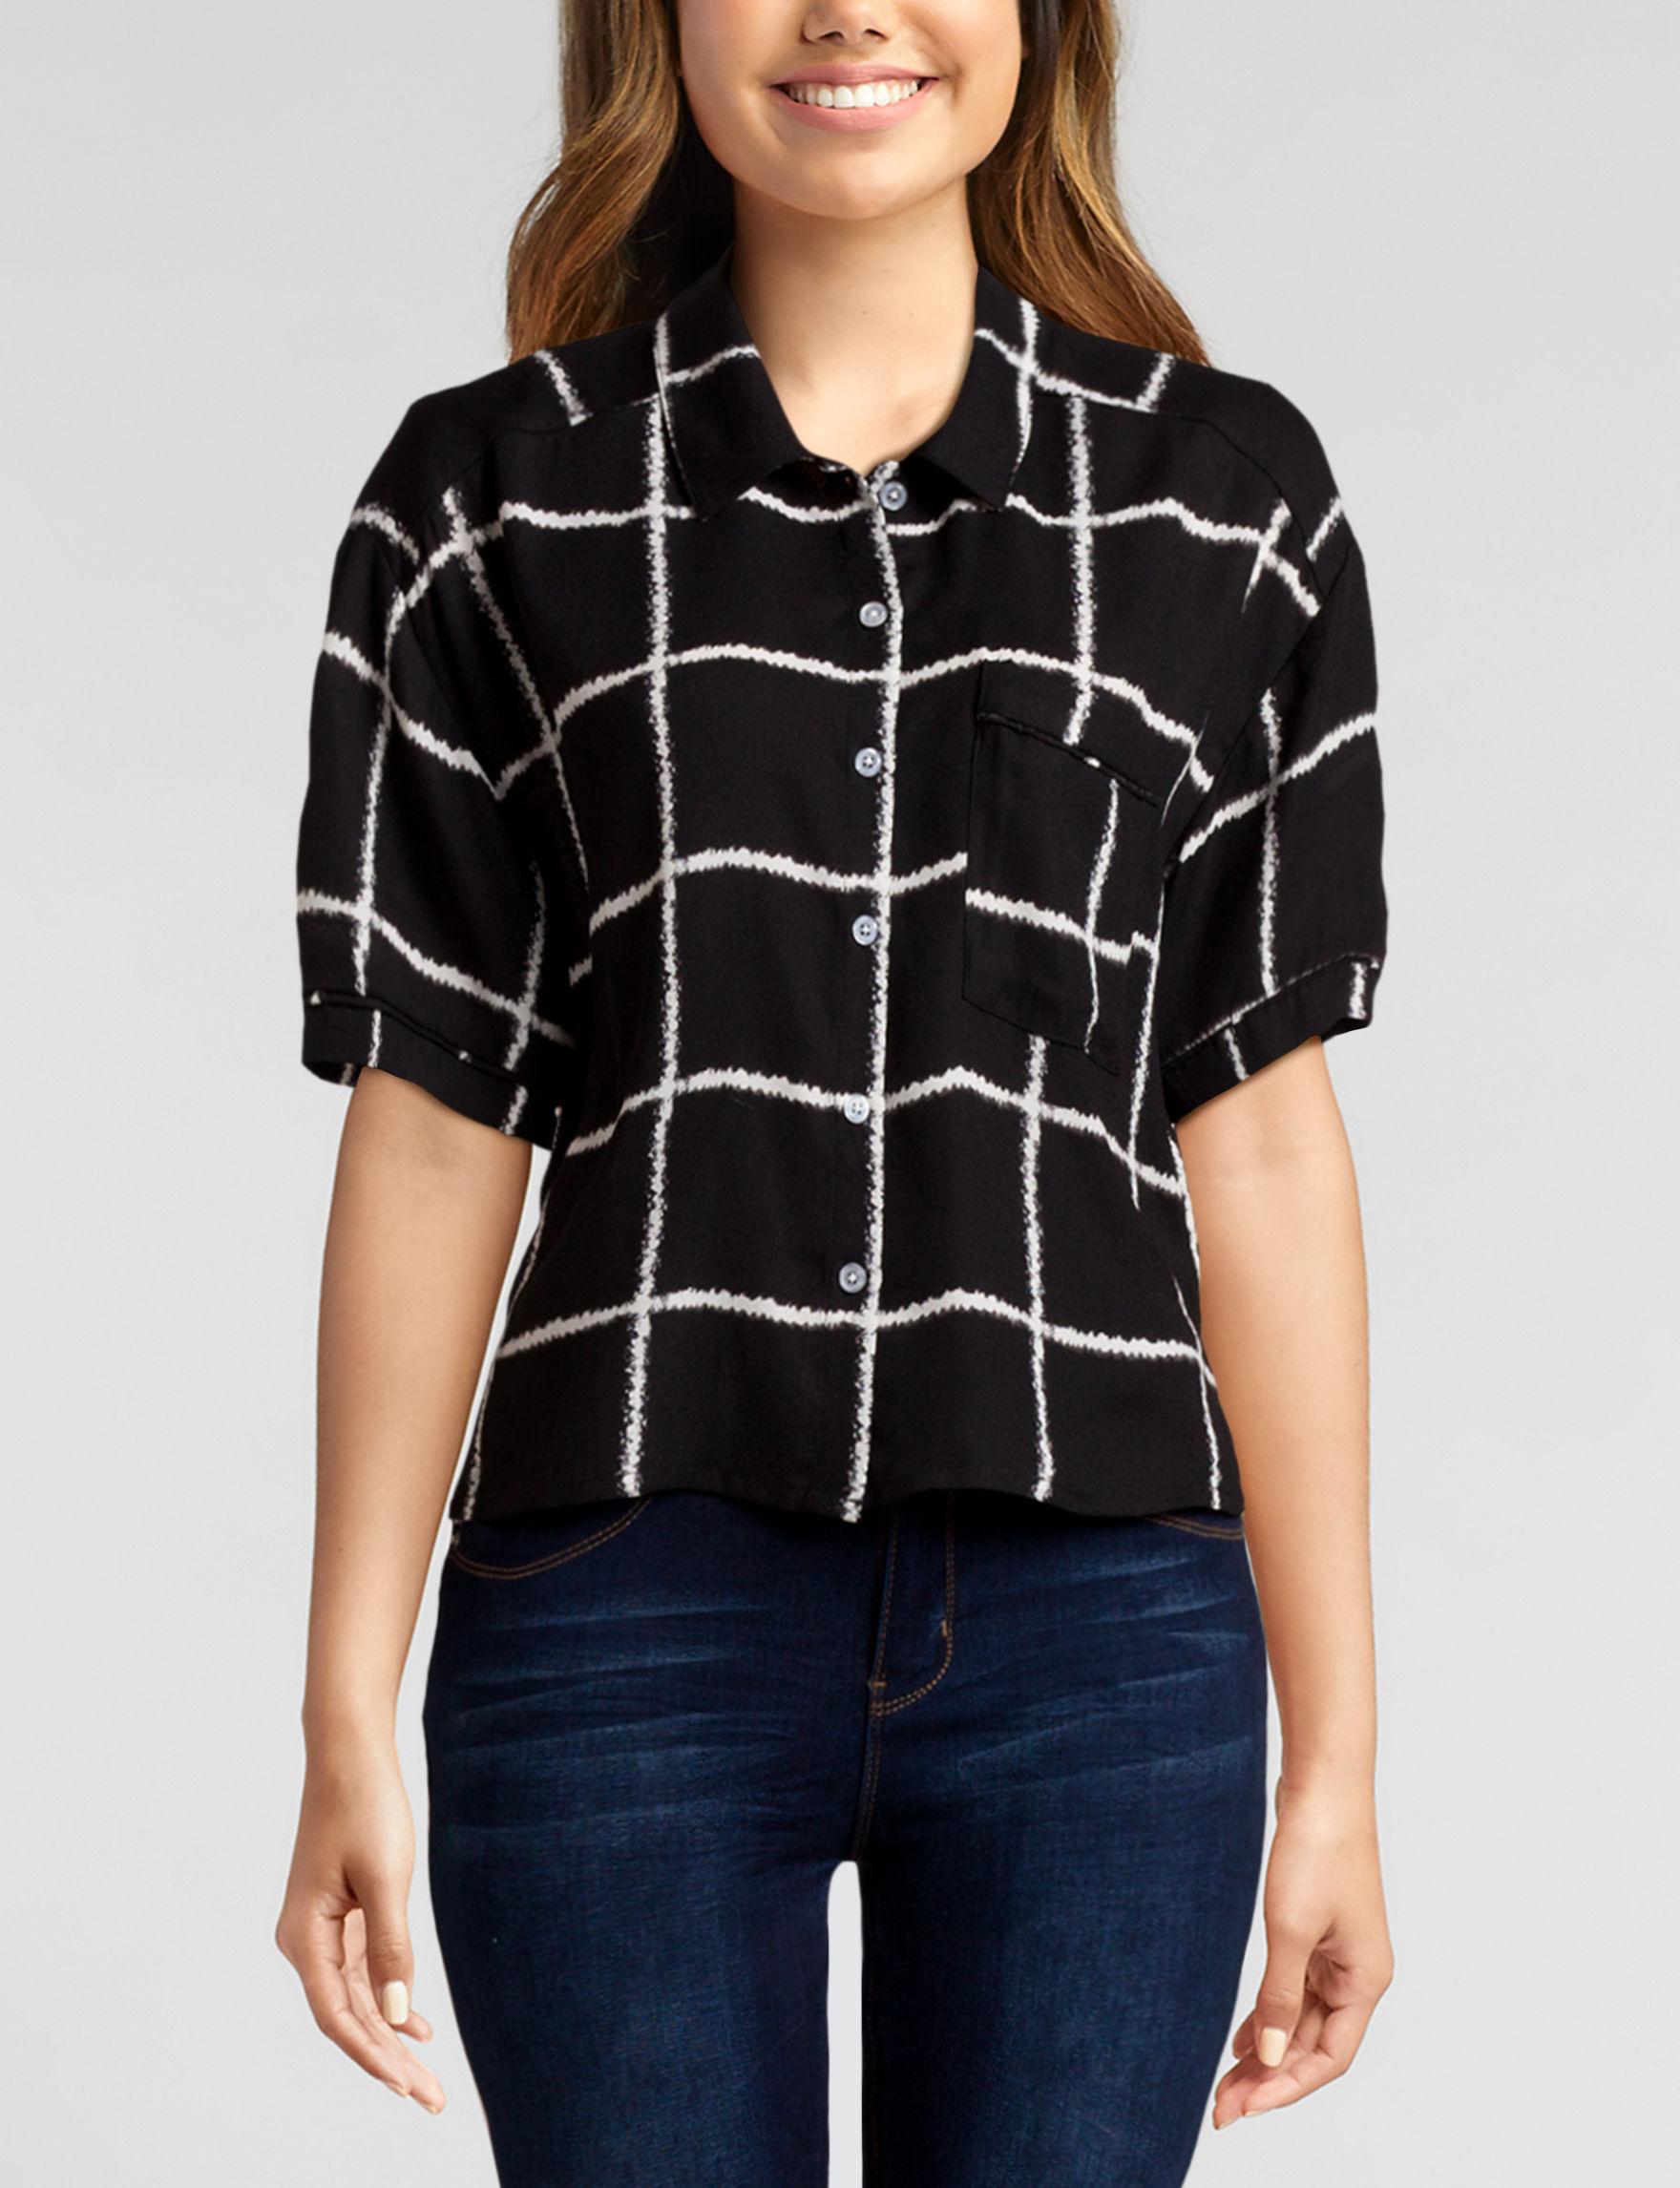 Heart Soul Black White Shirts & Blouses